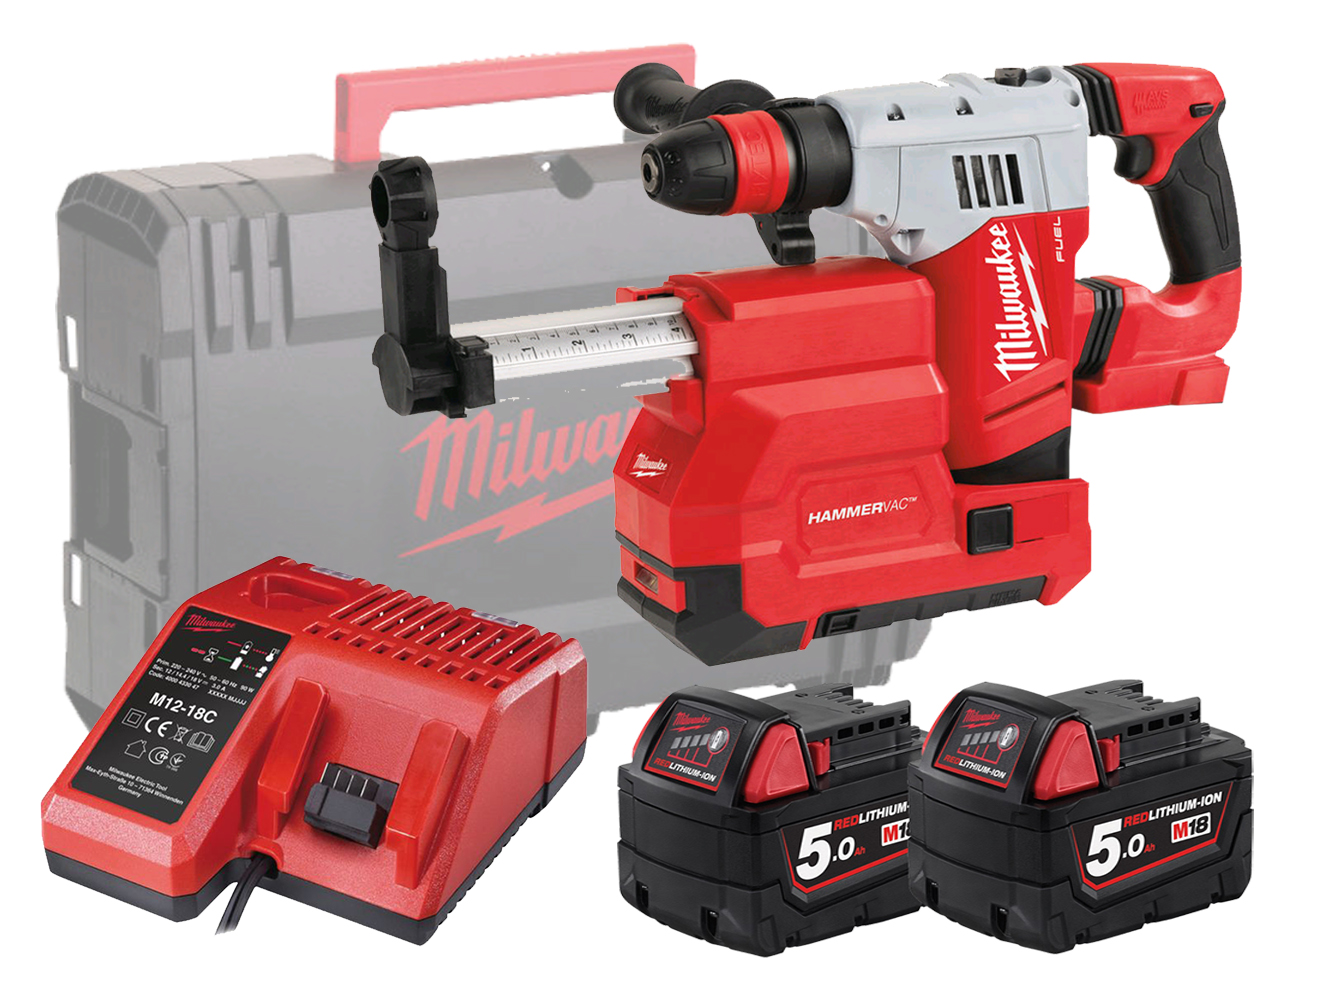 MILWAUKEE 18V FUEL SDS+ HAMMER & DUST EXTRACTOR - M18CHPXDE - 5.0AH PACK